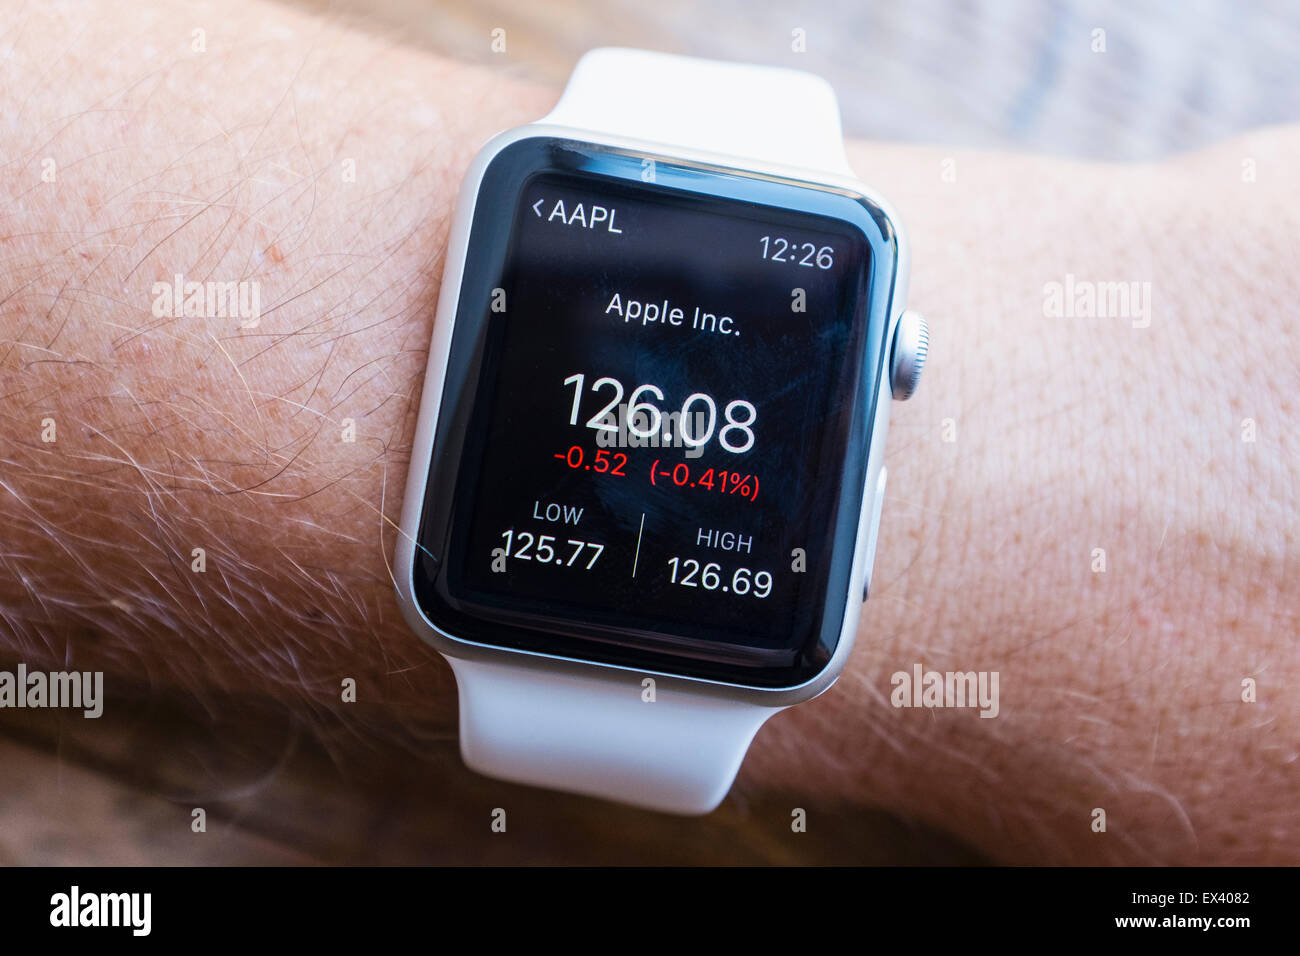 Stock price of Apple company showing on an Apple Watch - Stock Image